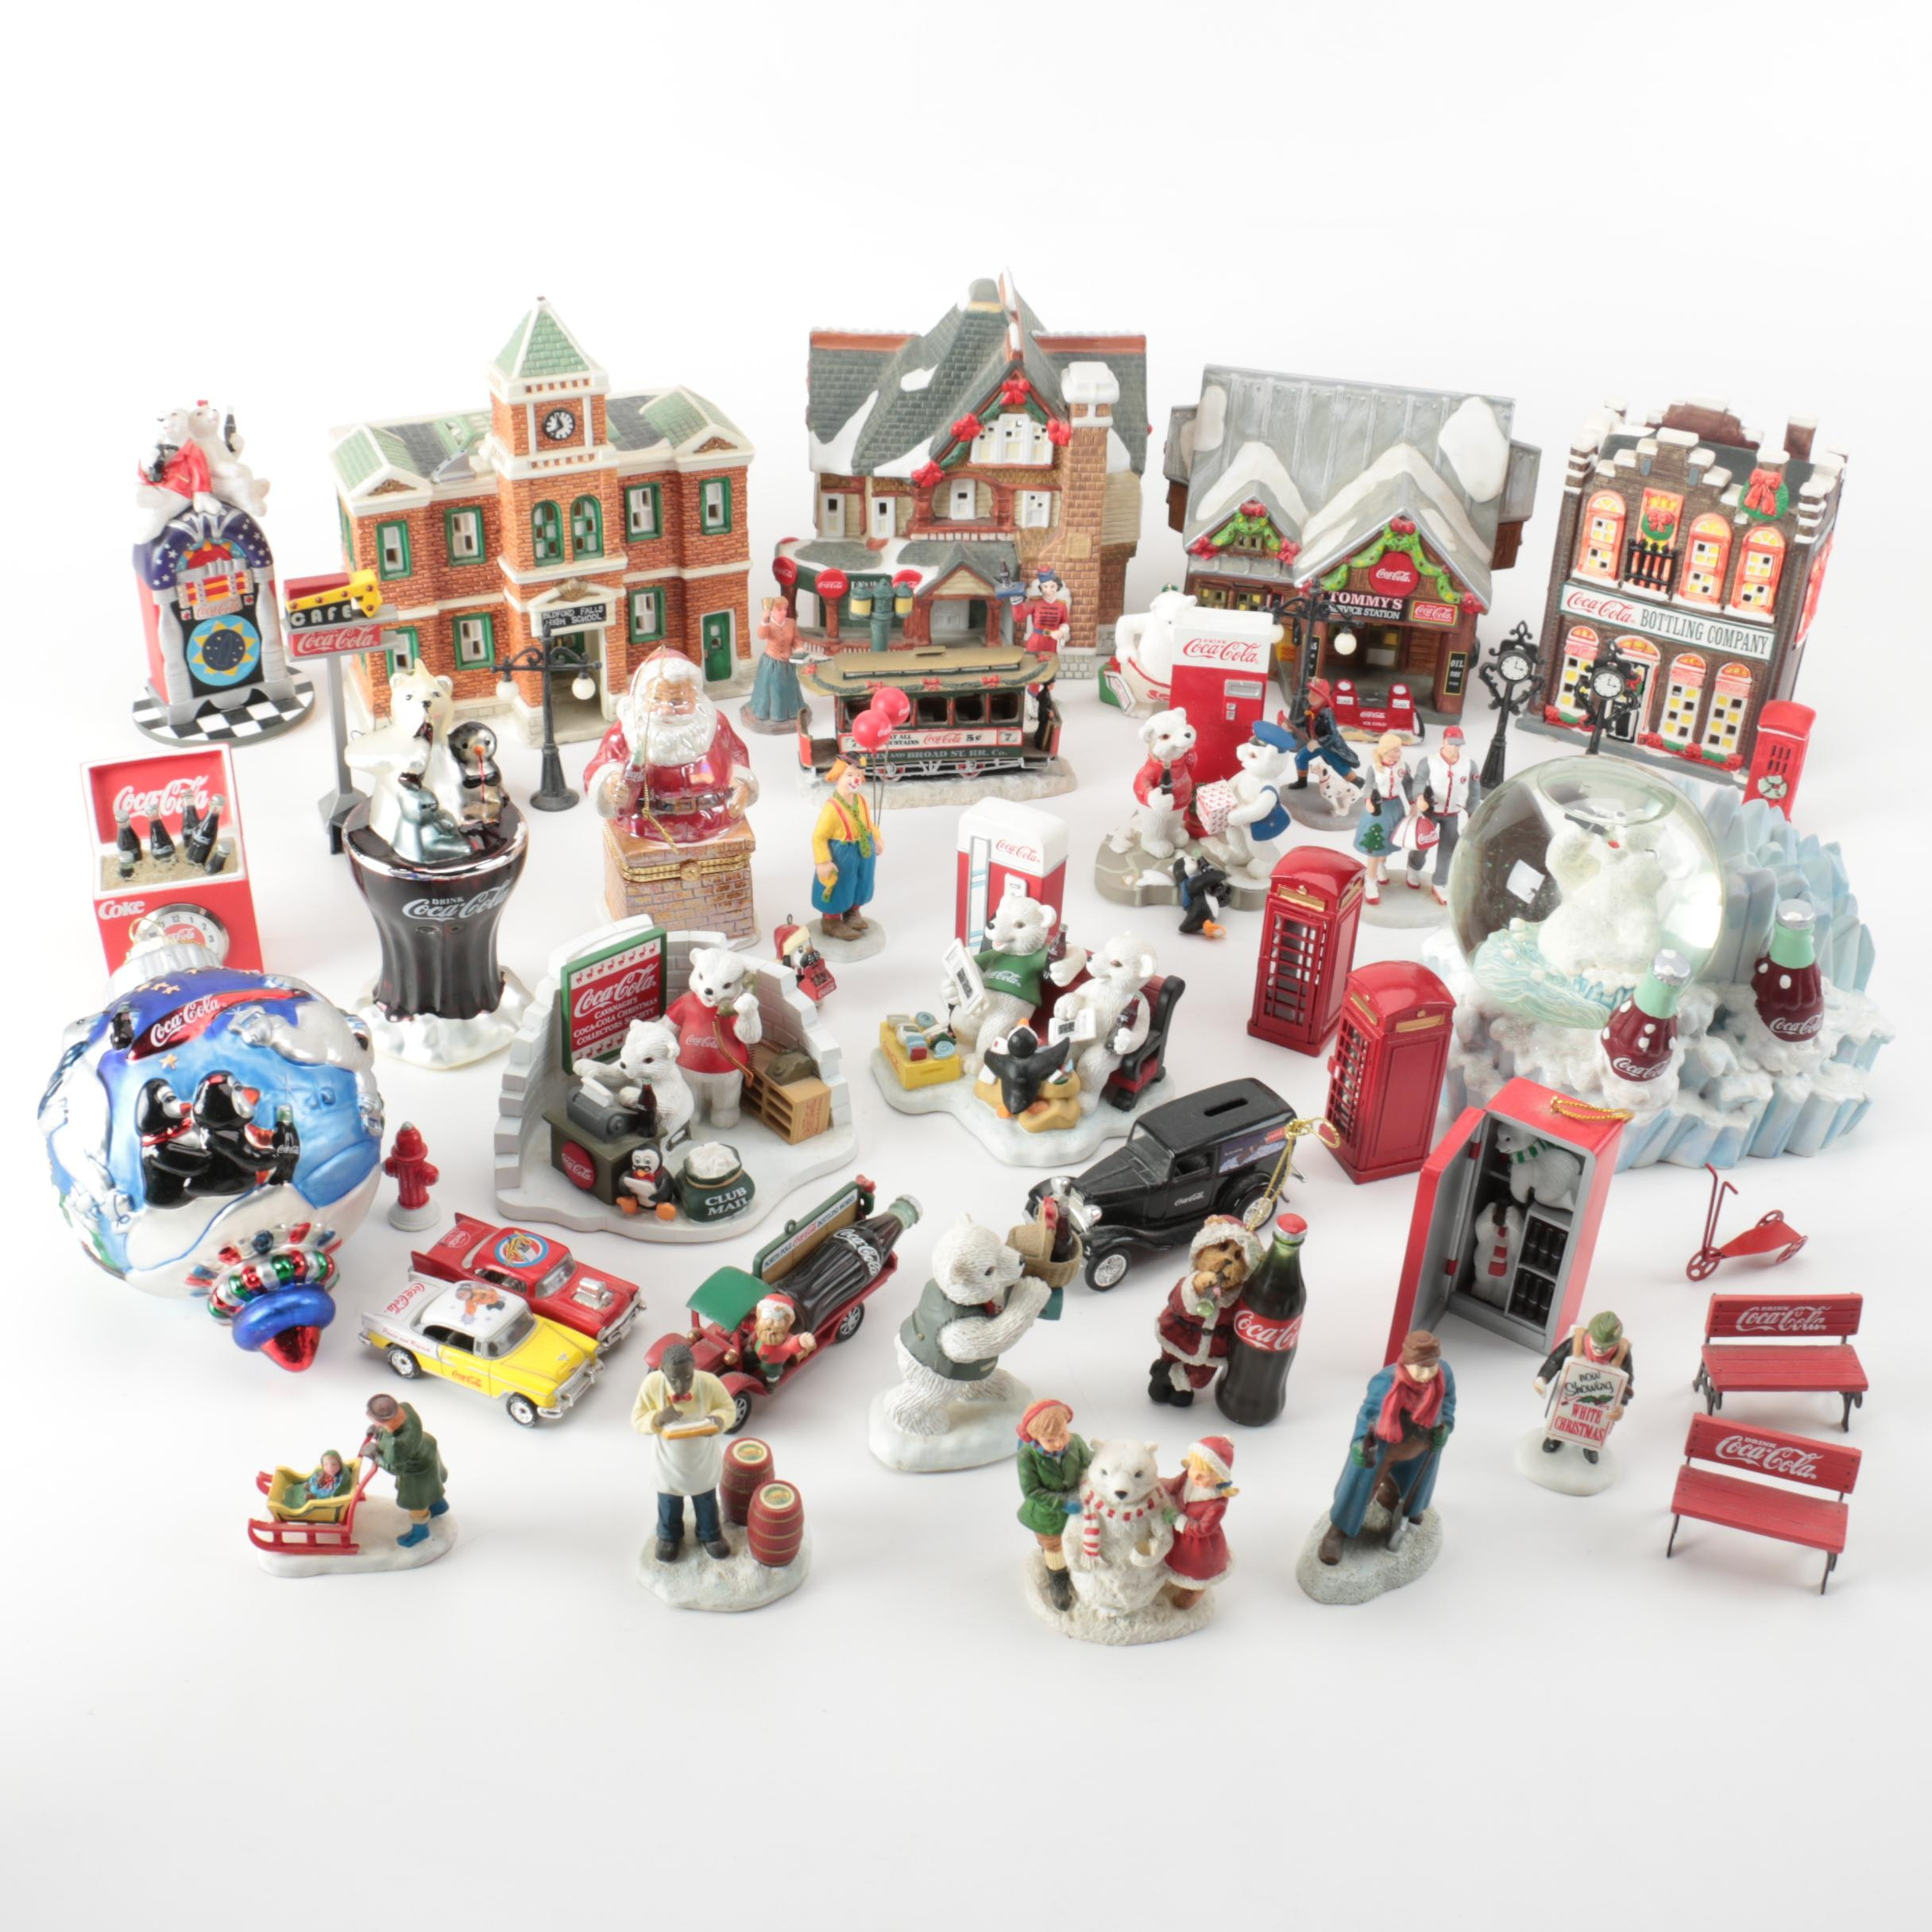 Christmas Village and Other Holiday Decor